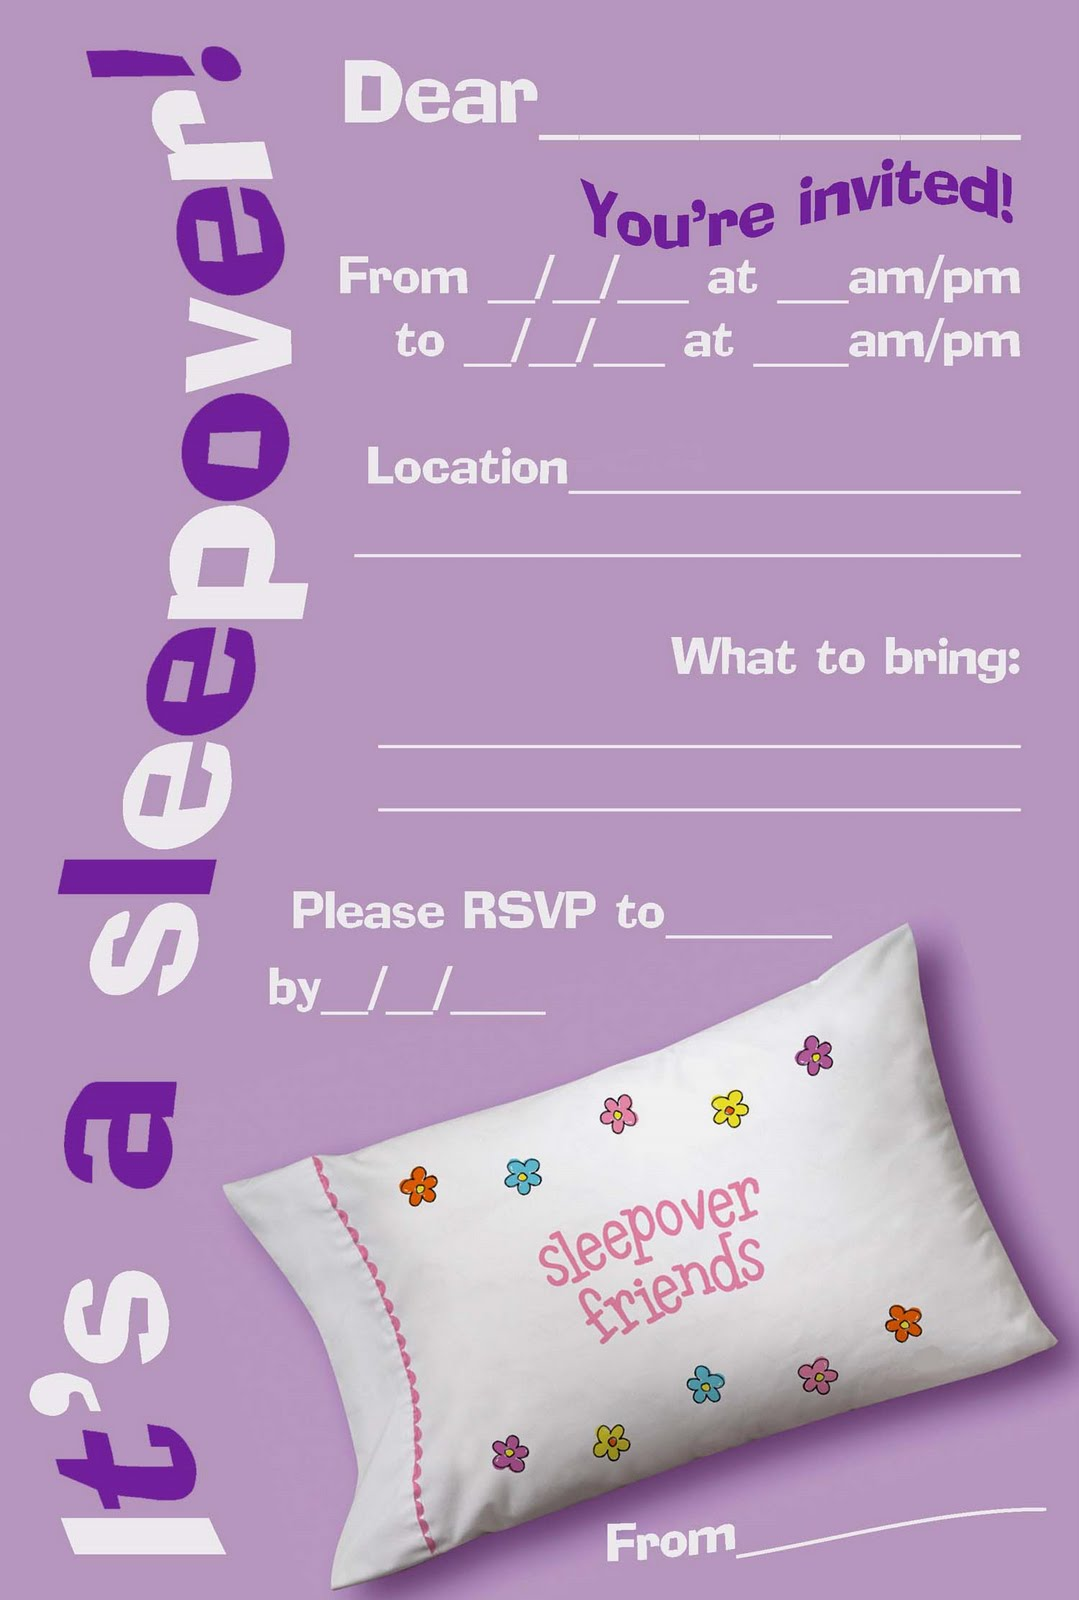 Exceptional image regarding printable slumber party invitations